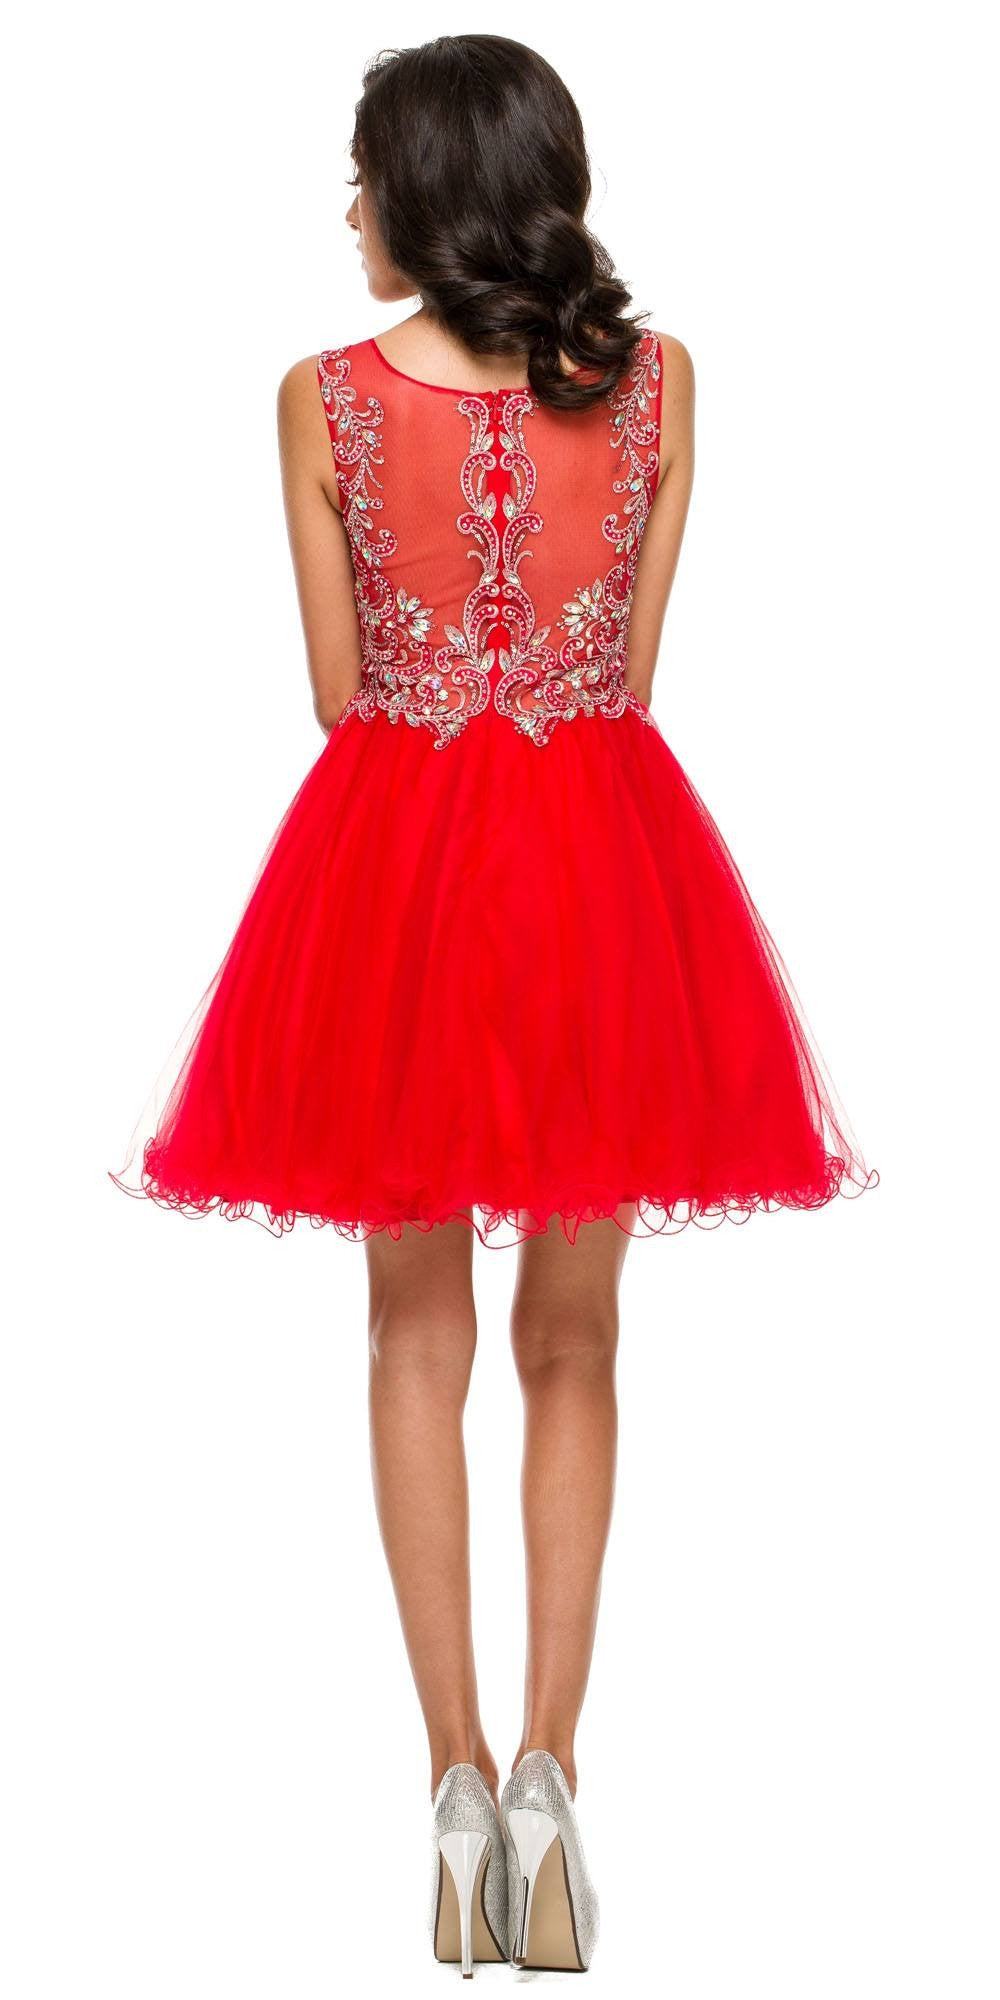 Poofy A Line Red Short Homecoming Dress Tulle Embroidery Back